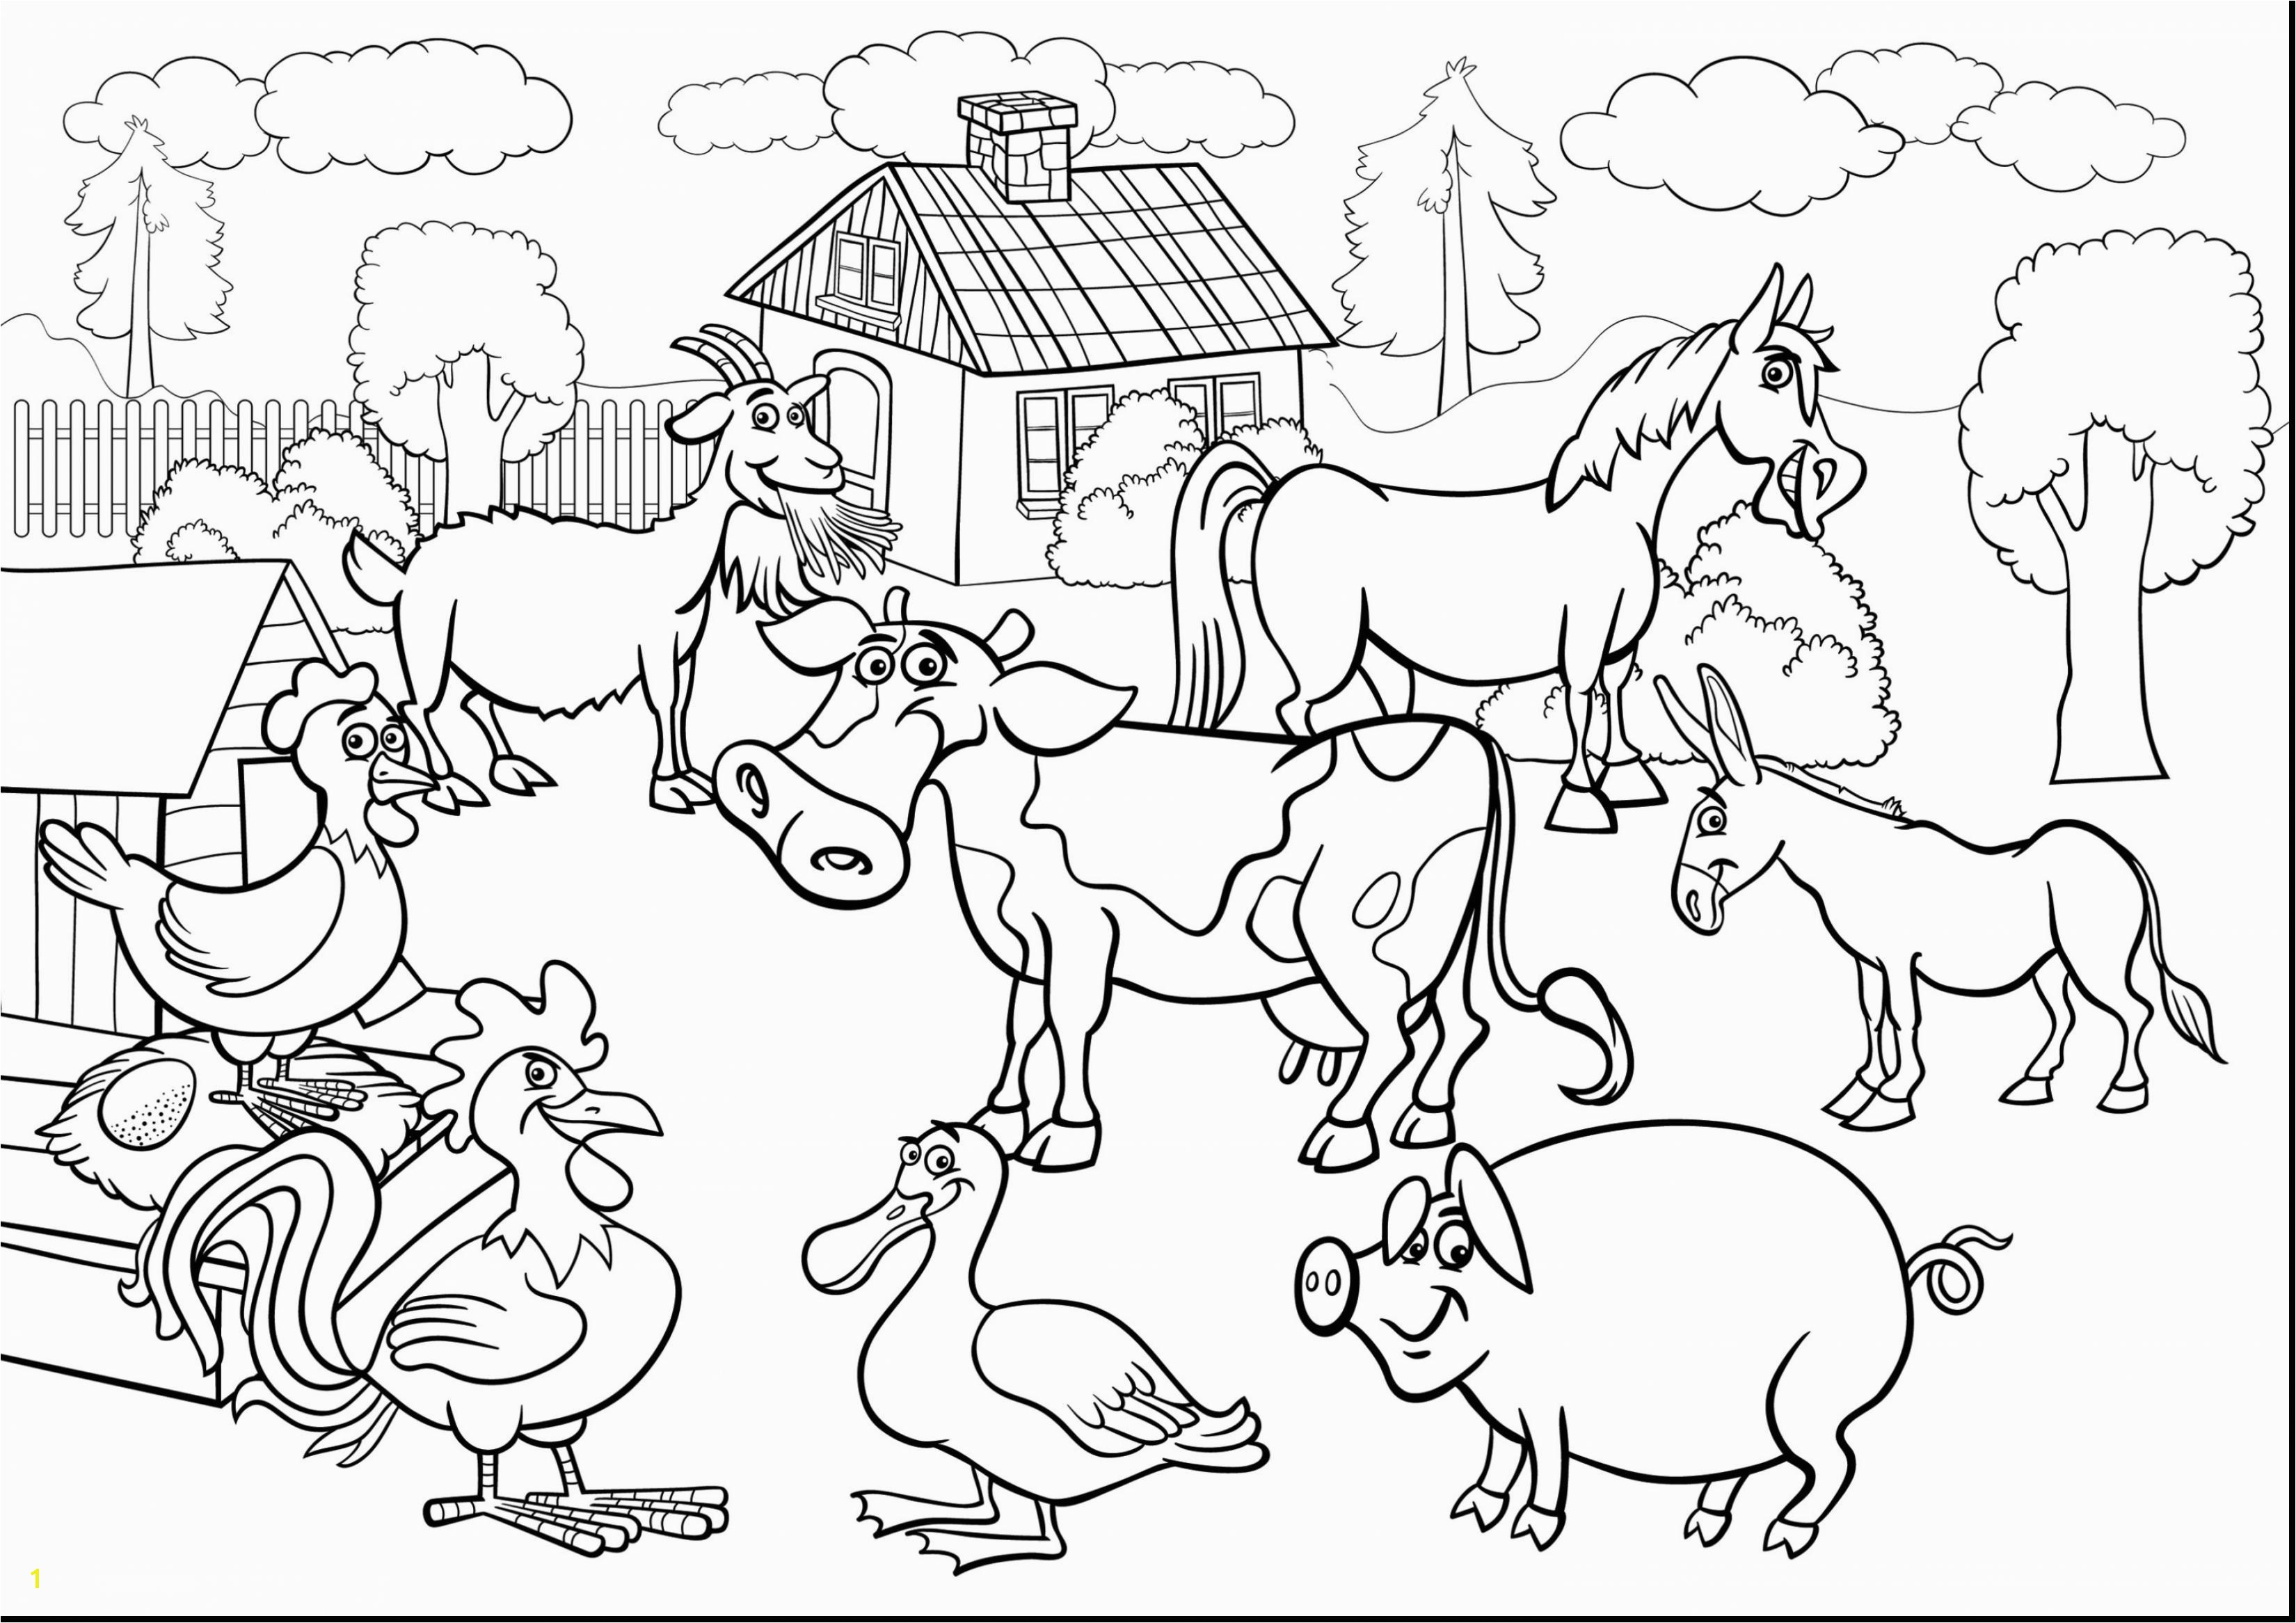 Approved Free Farm Scene Coloring Pages Astonishing Animal With Animals Ribsvigyapan With Coloring Pages Farm